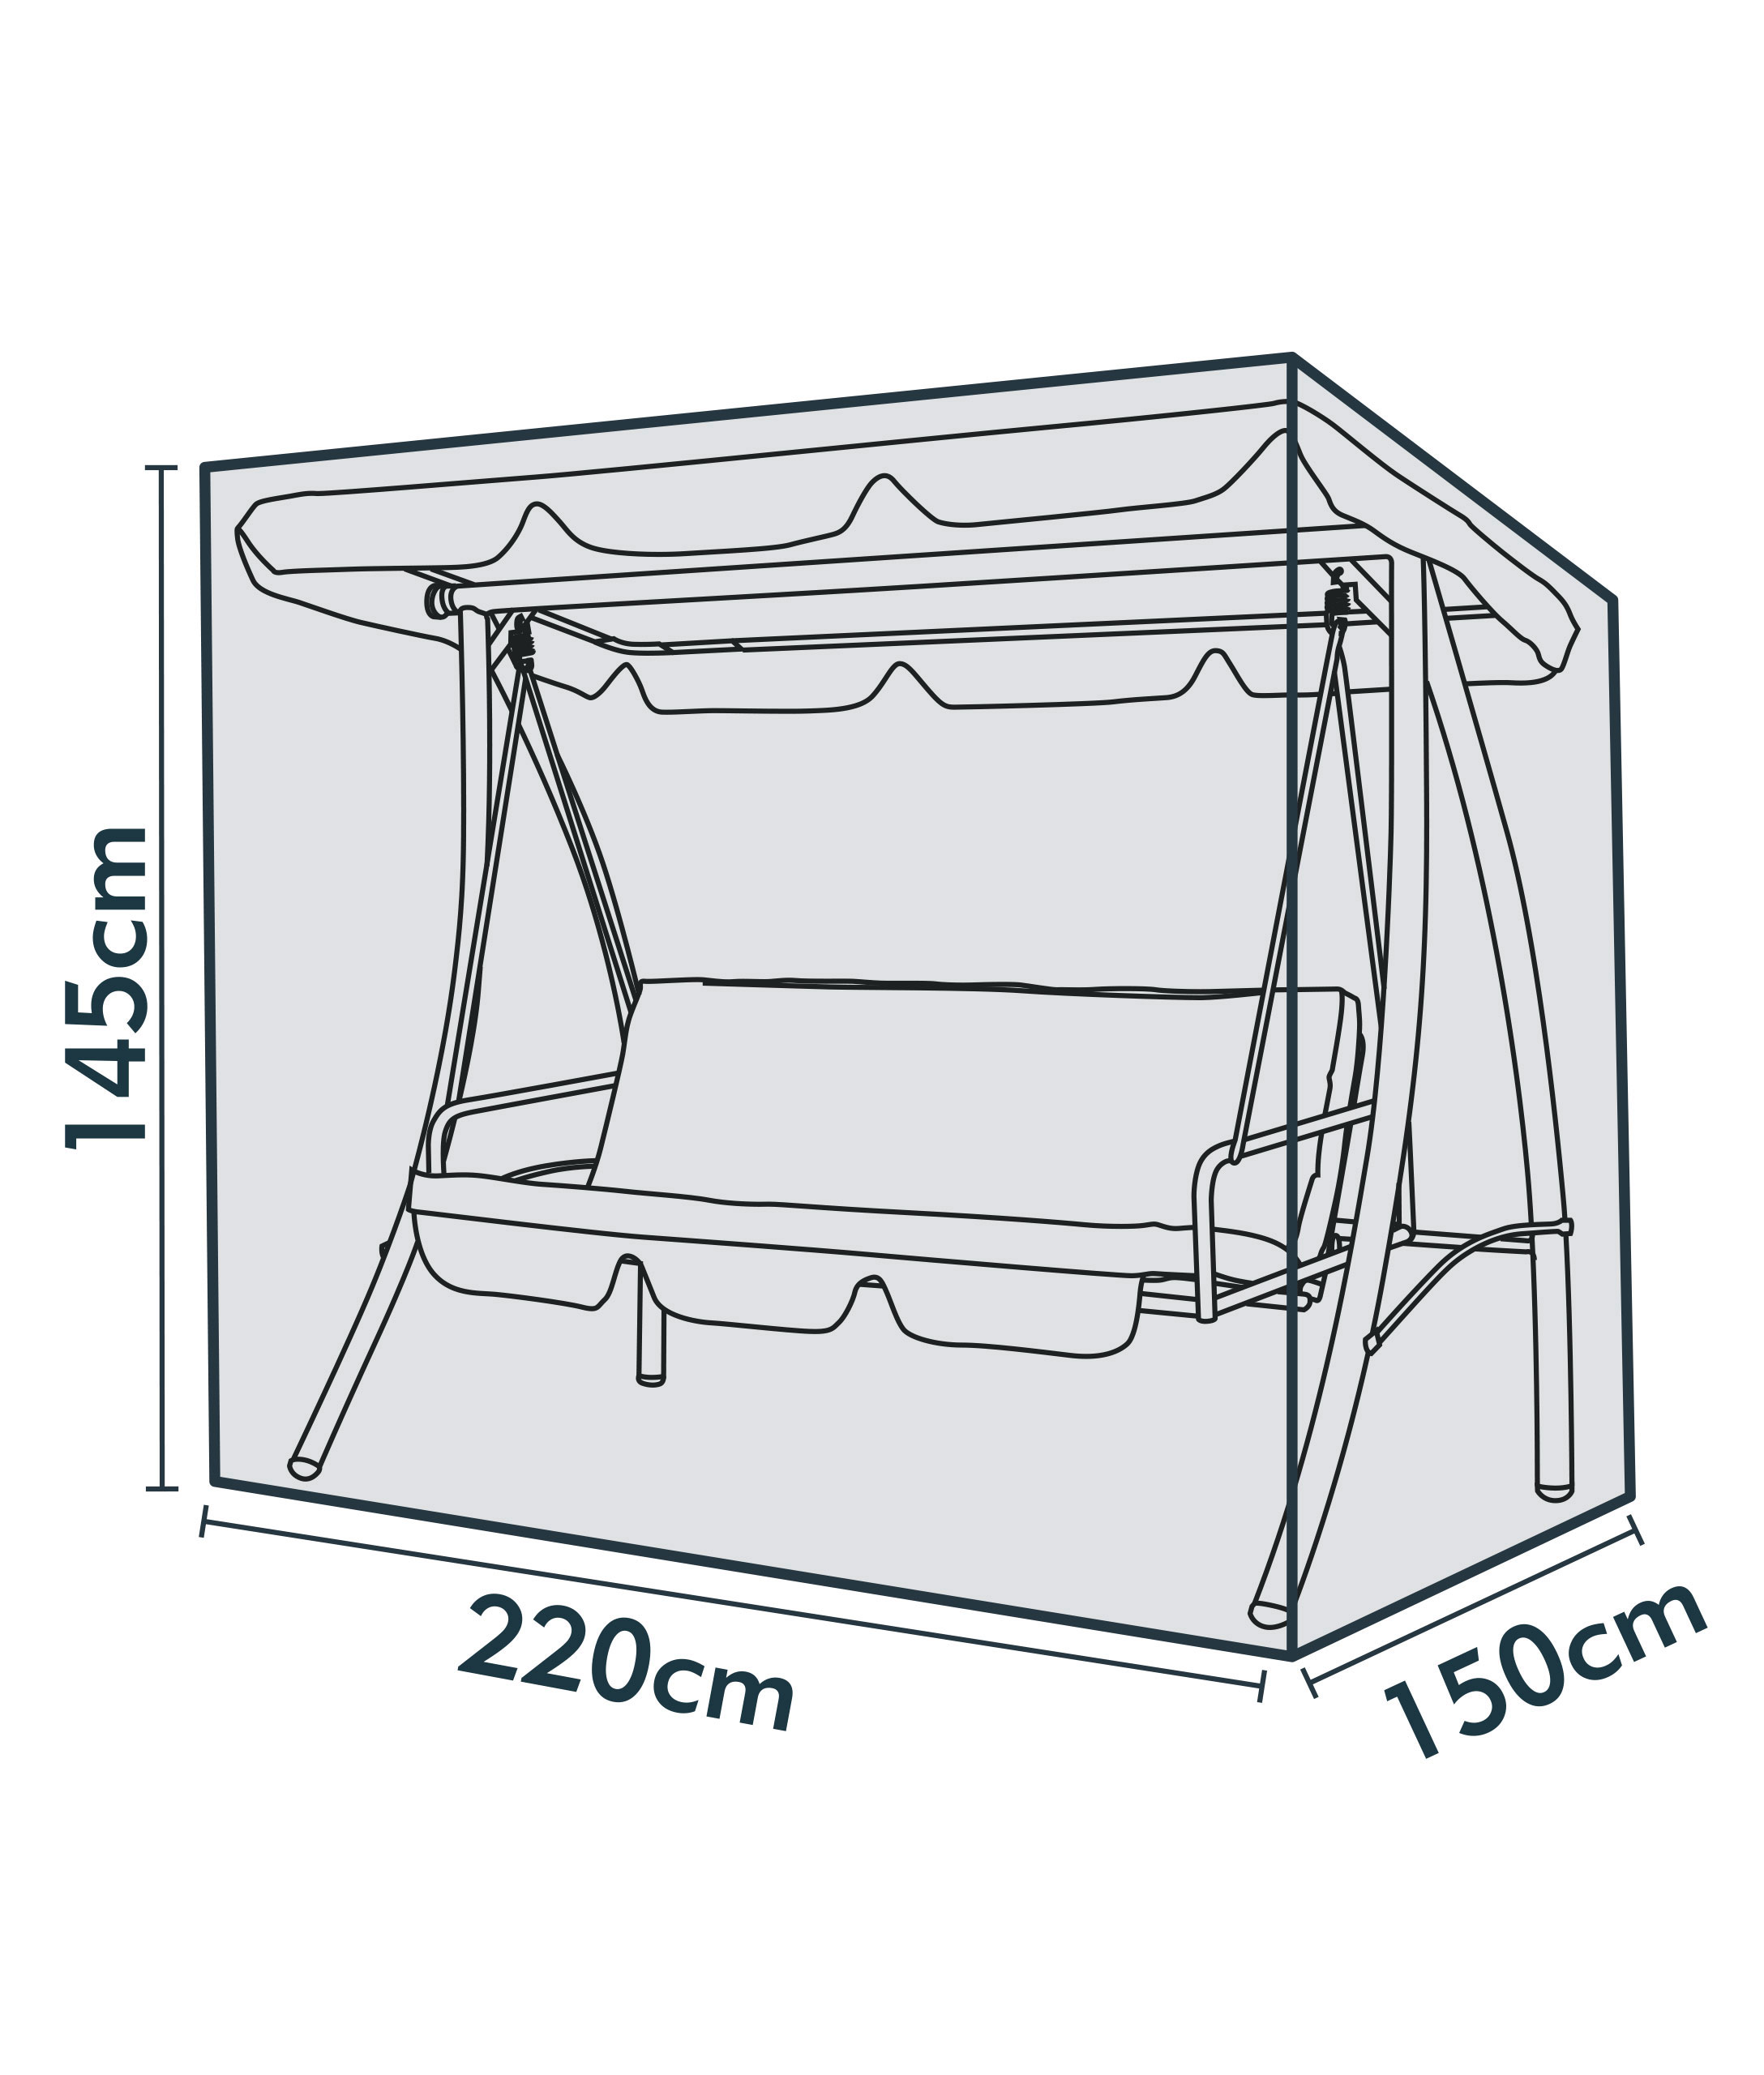 jarder swing seat cover dimensions